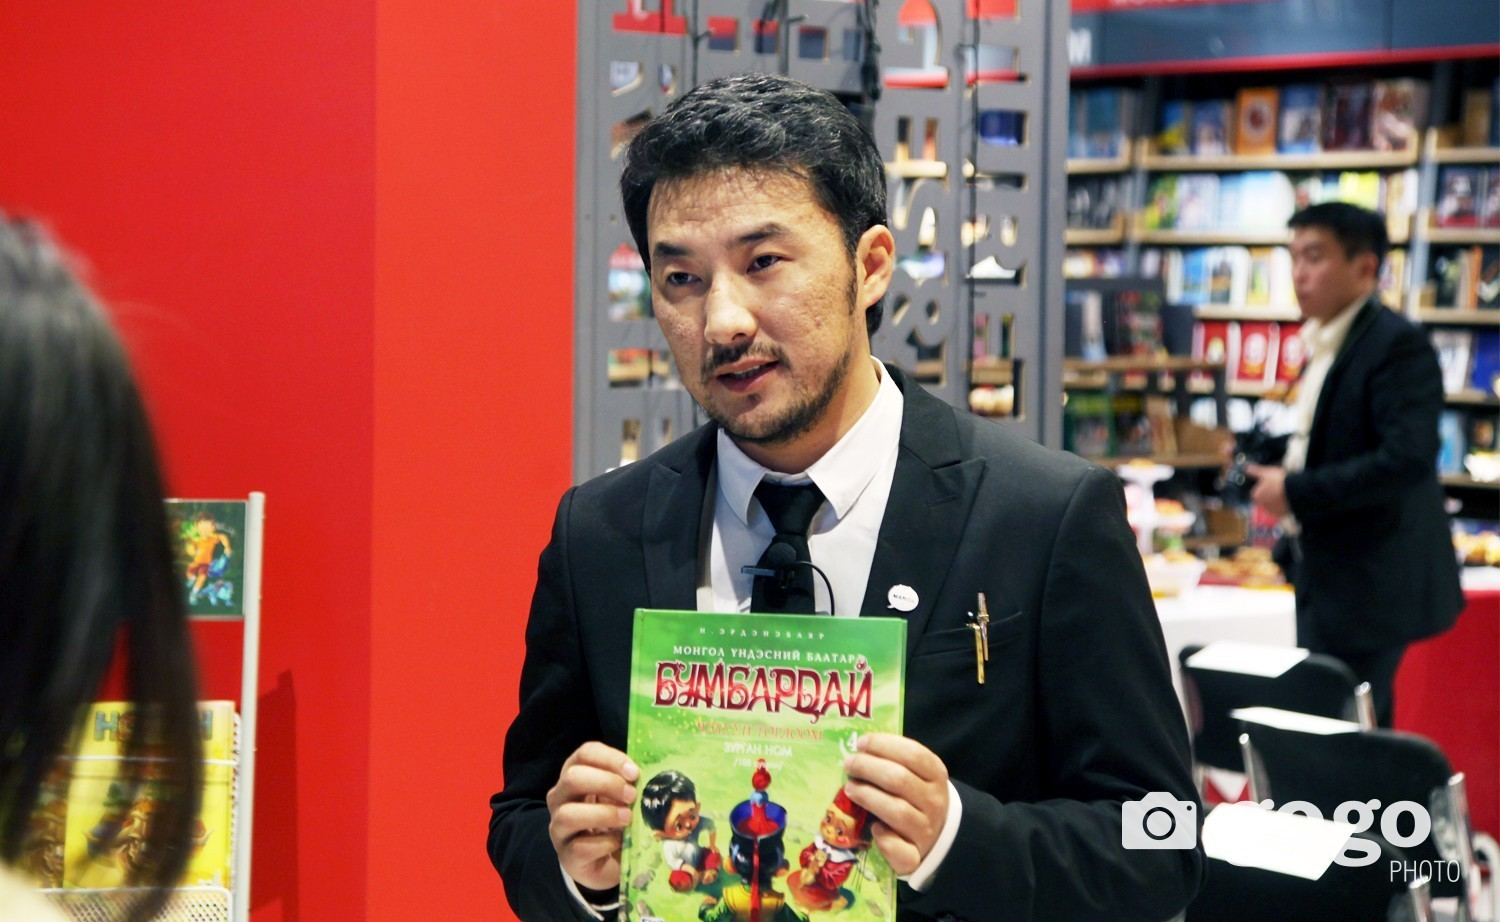 'Bumbardai' comic book author Erdenebayar Nambaral